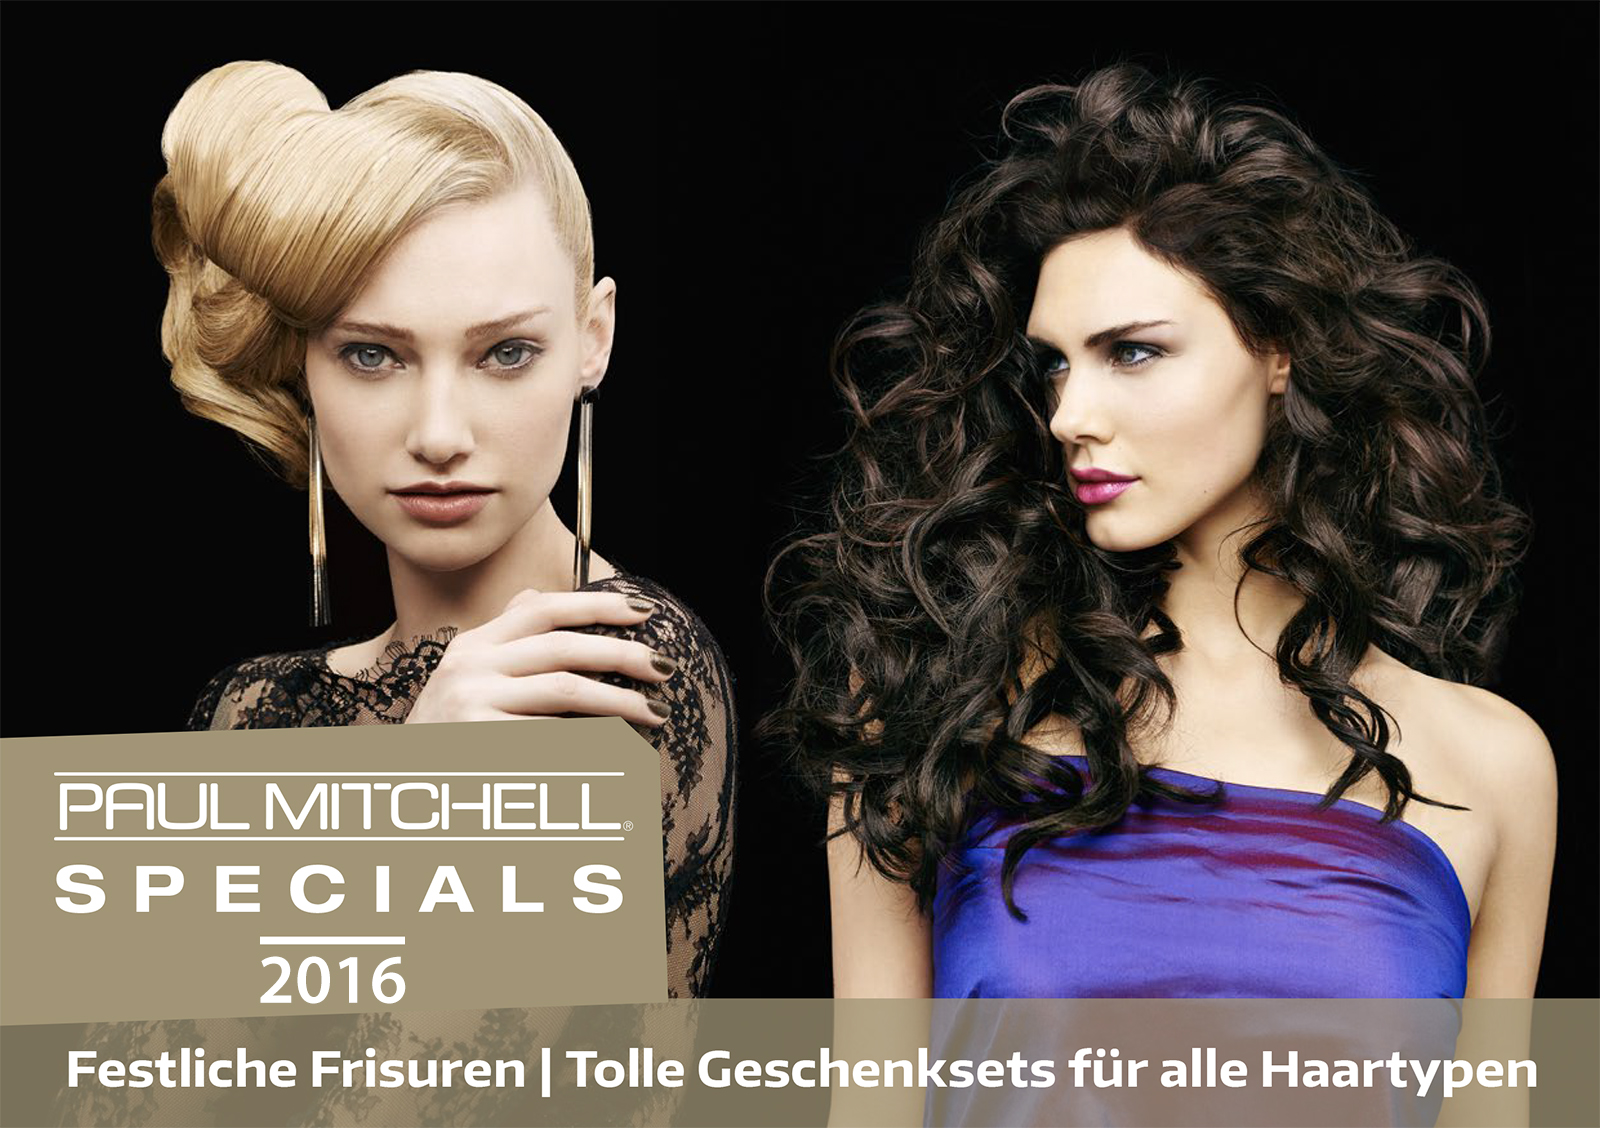 Friseur Citycut in mettmann Paul Mitchell Friseur Salon